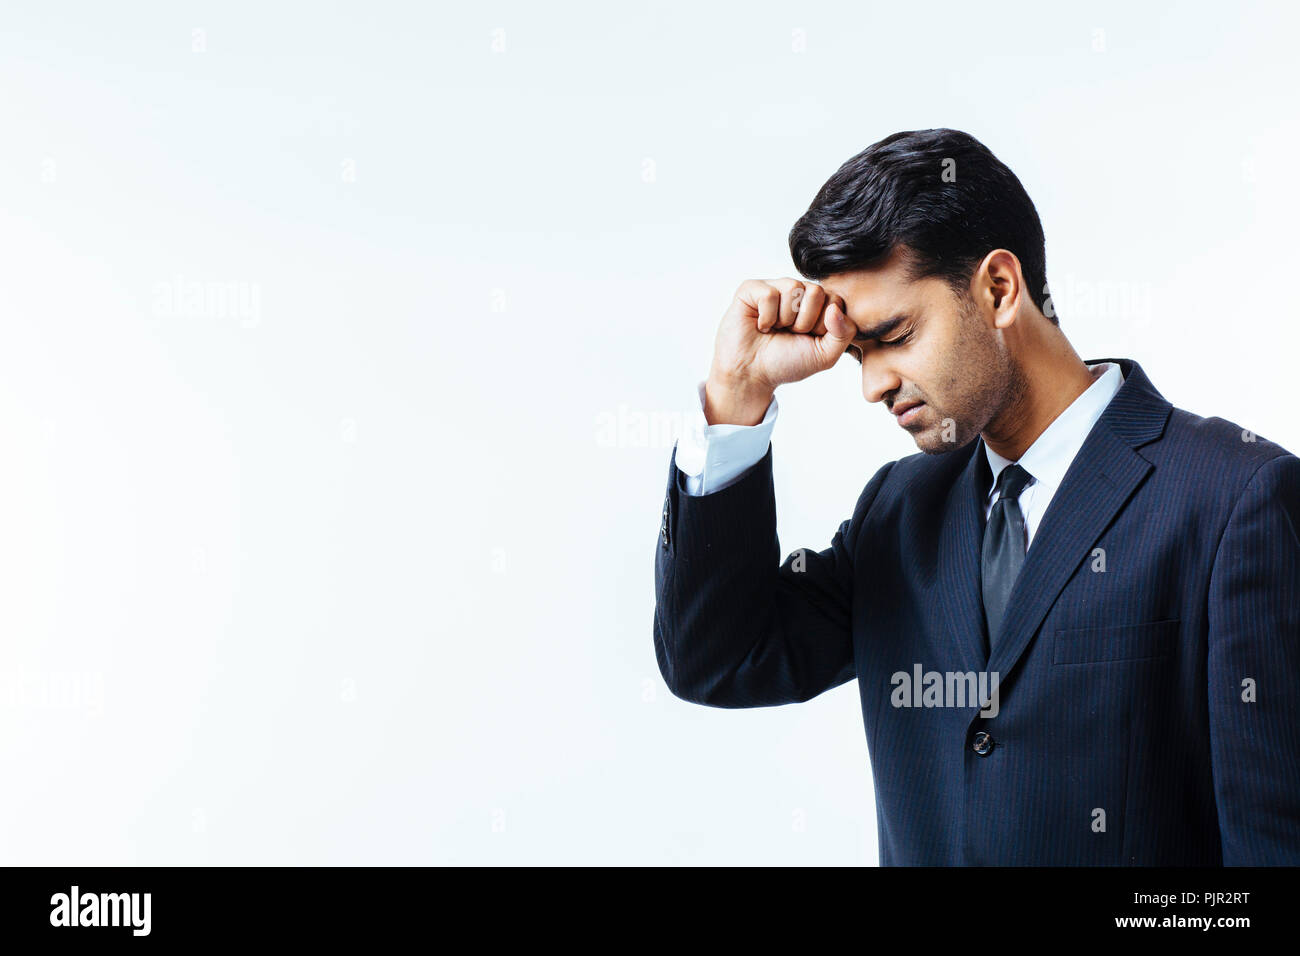 Portrait of a handsome businessman holding his head in disbelief, in pain or meditating,  isolated on white background - Stock Image